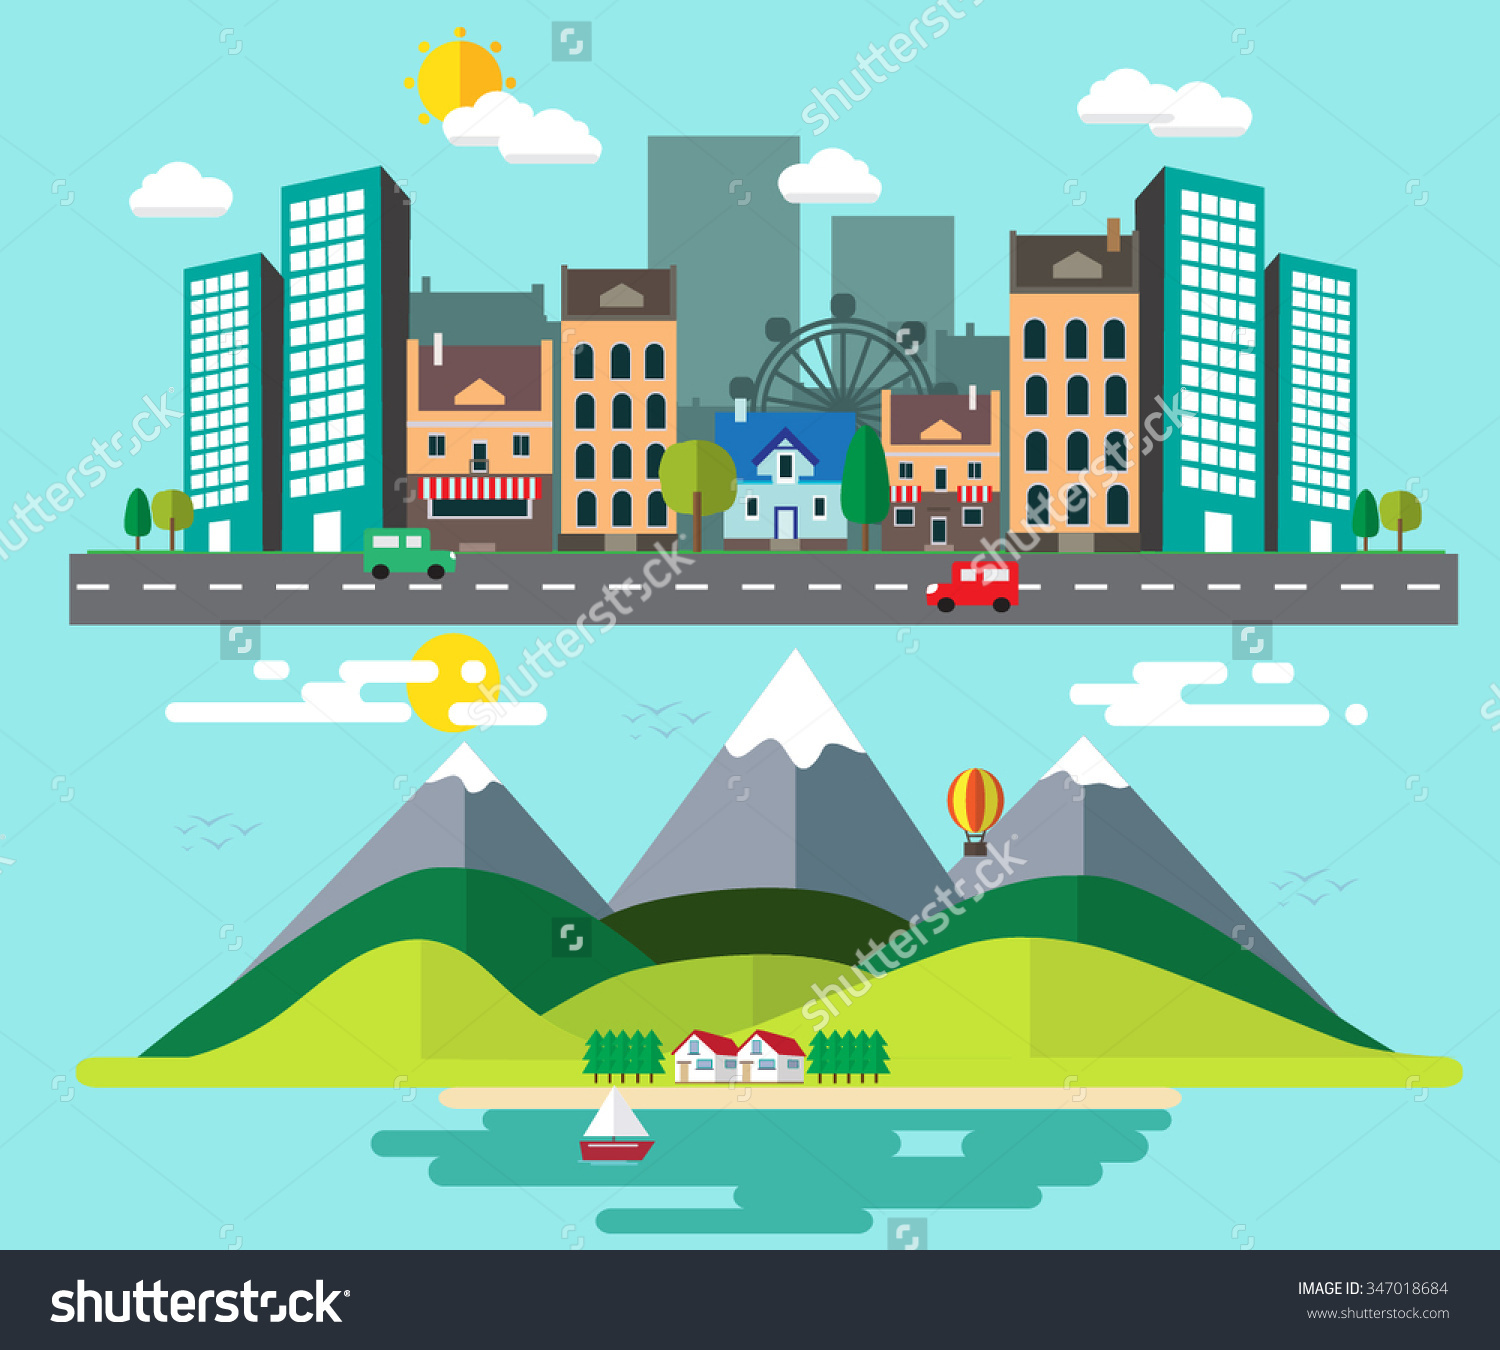 Countyside clipart rural town Between Places Different collection Rural